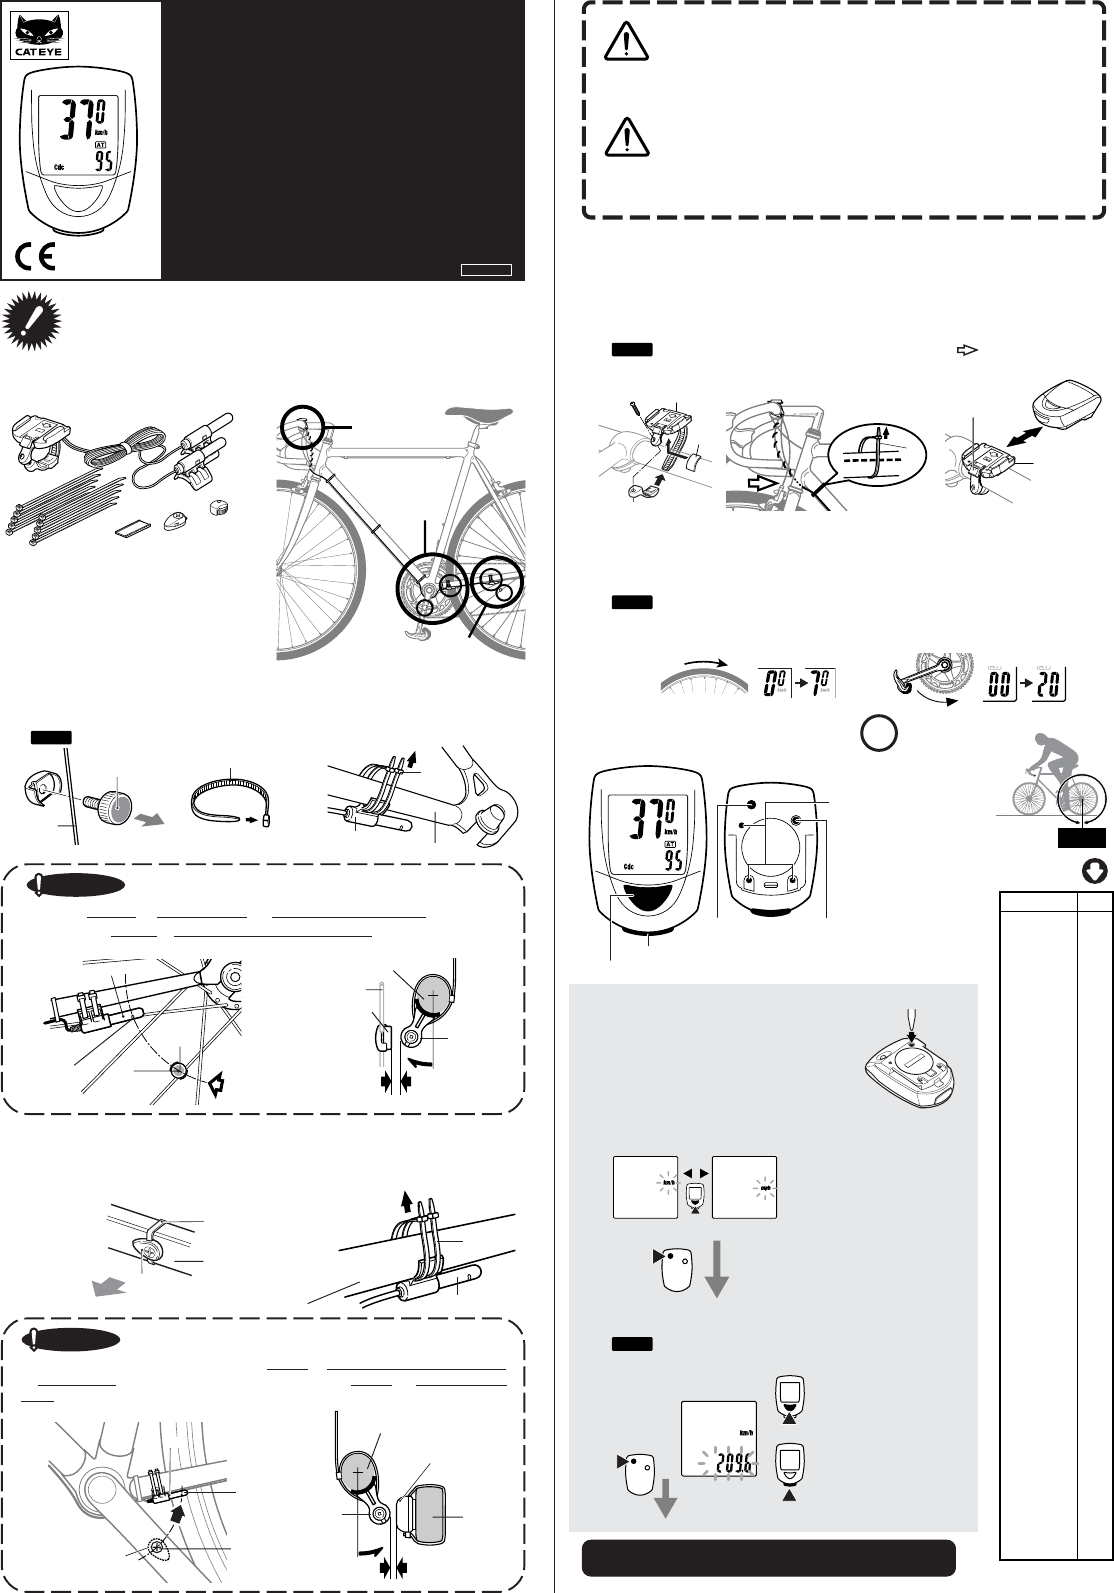 Cateye Bicycle Accessories Cc Cd200n User Guide Manualsonline